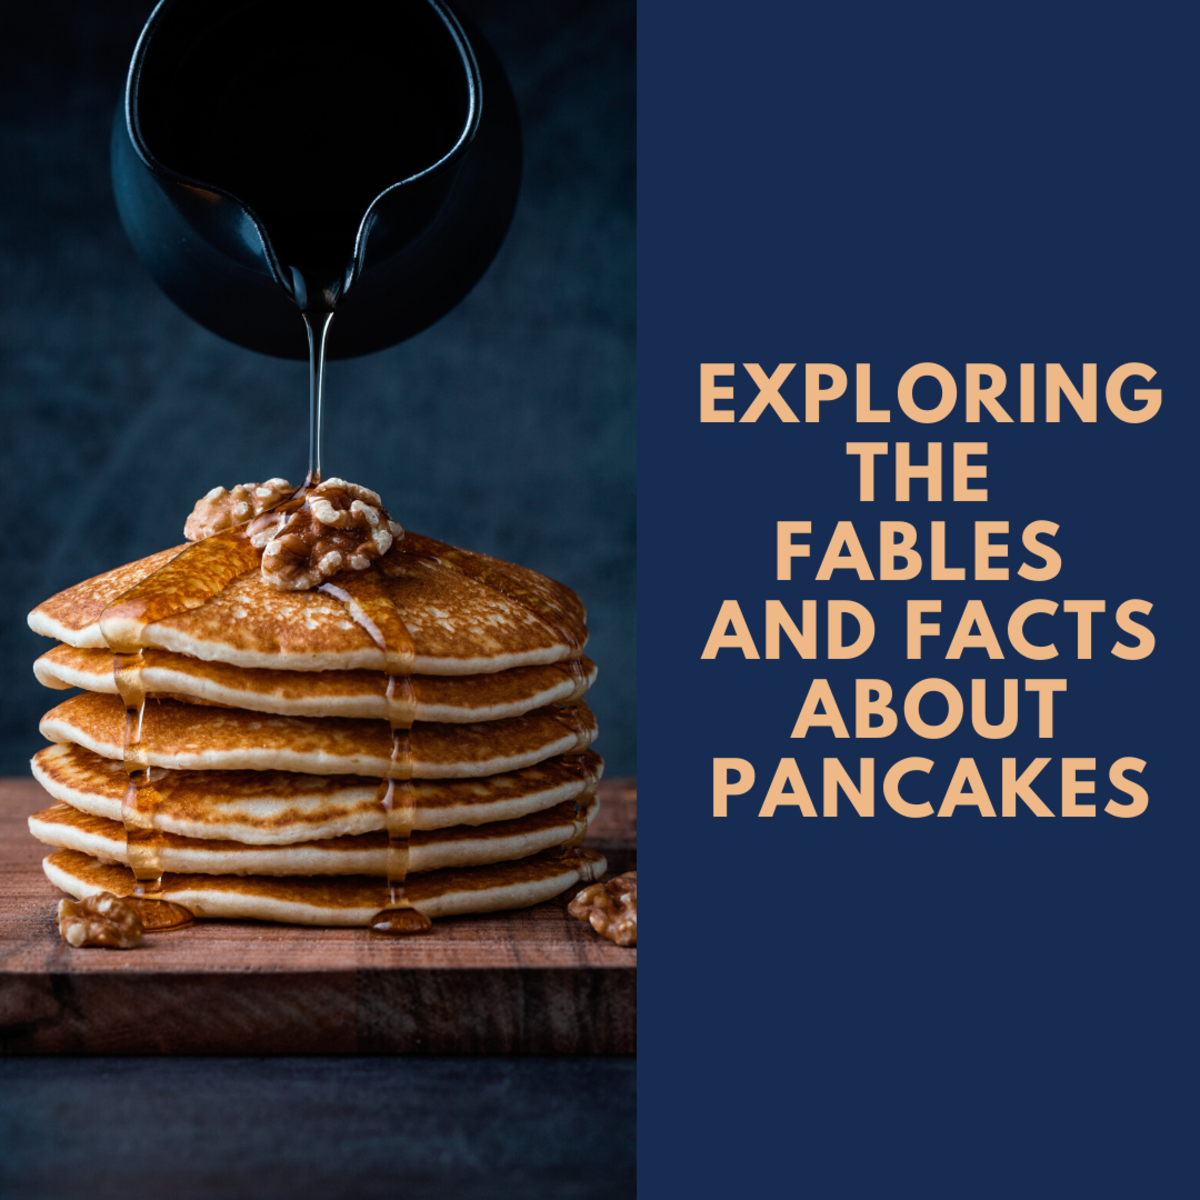 Pancakes are more than just  a tasty breakfast food. Read on to learn more about this delicious food.